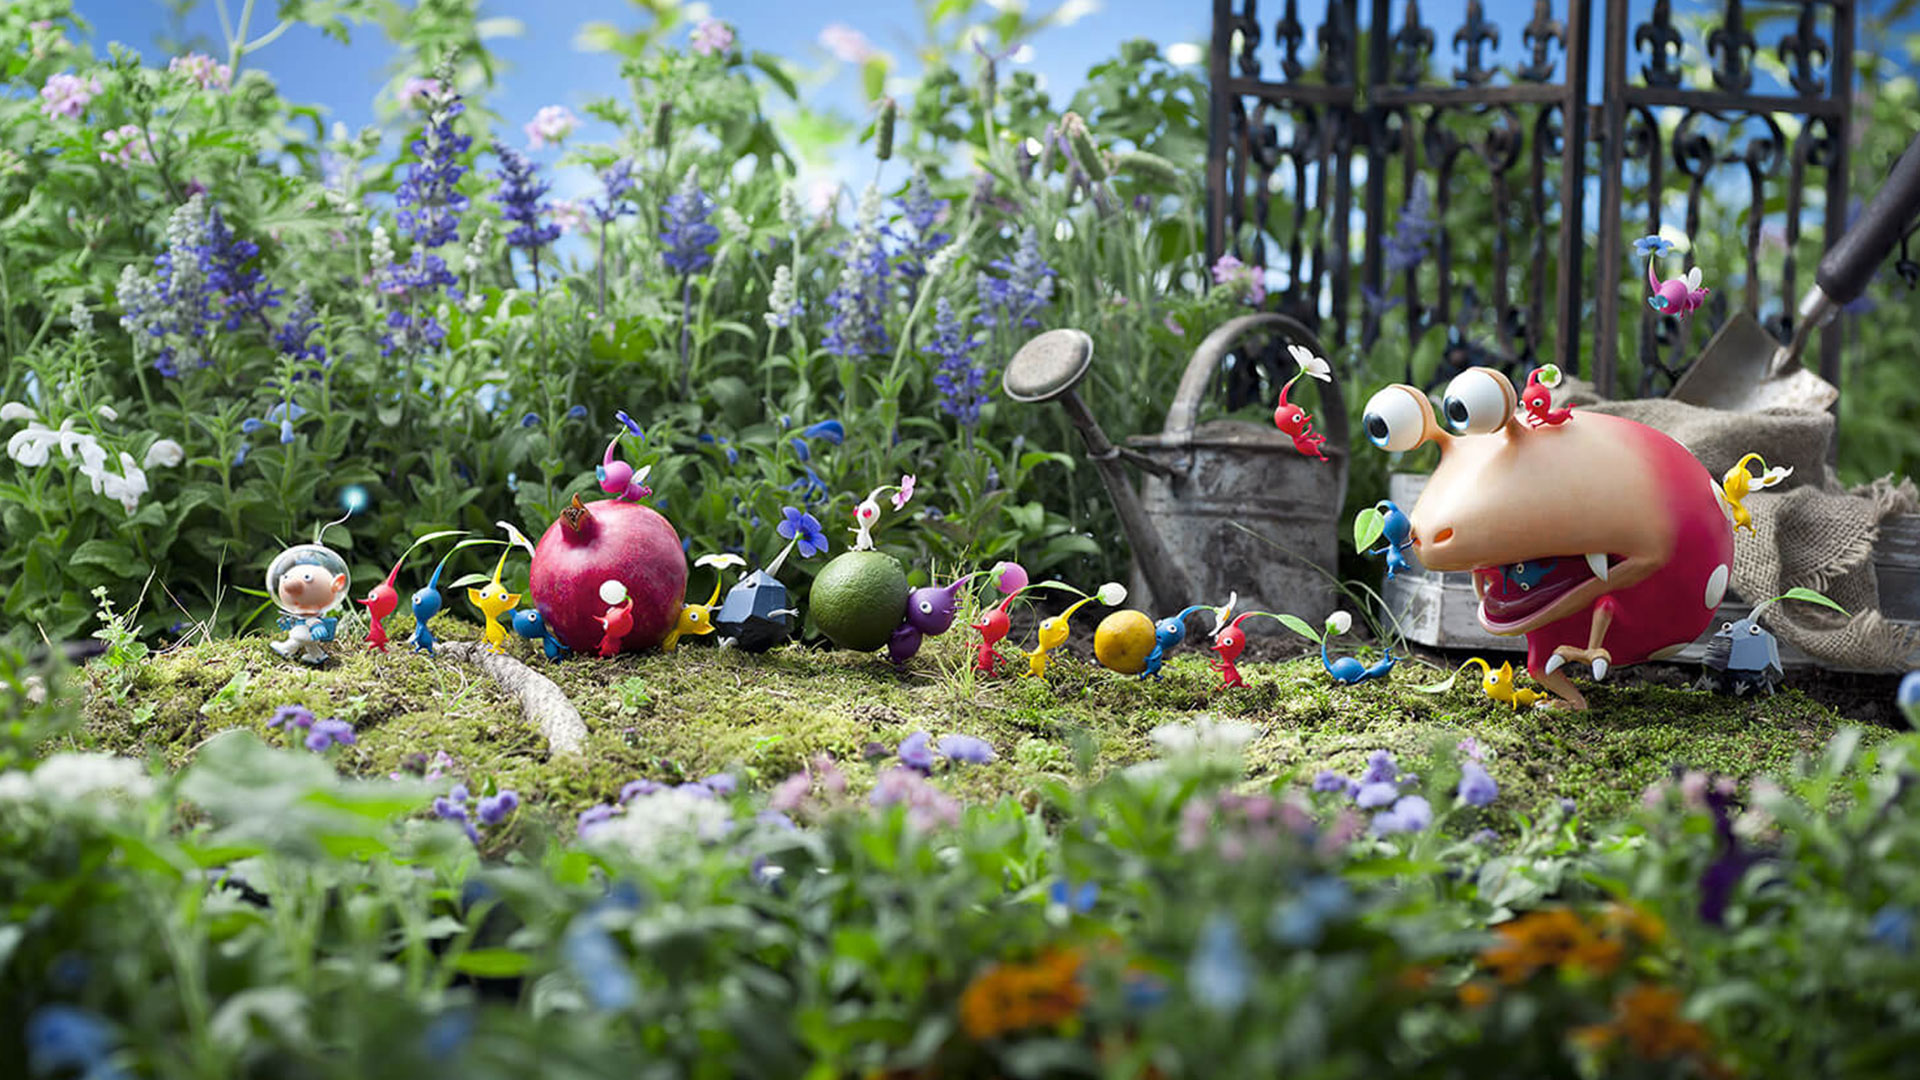 Pikmin 3 Deluxe review: